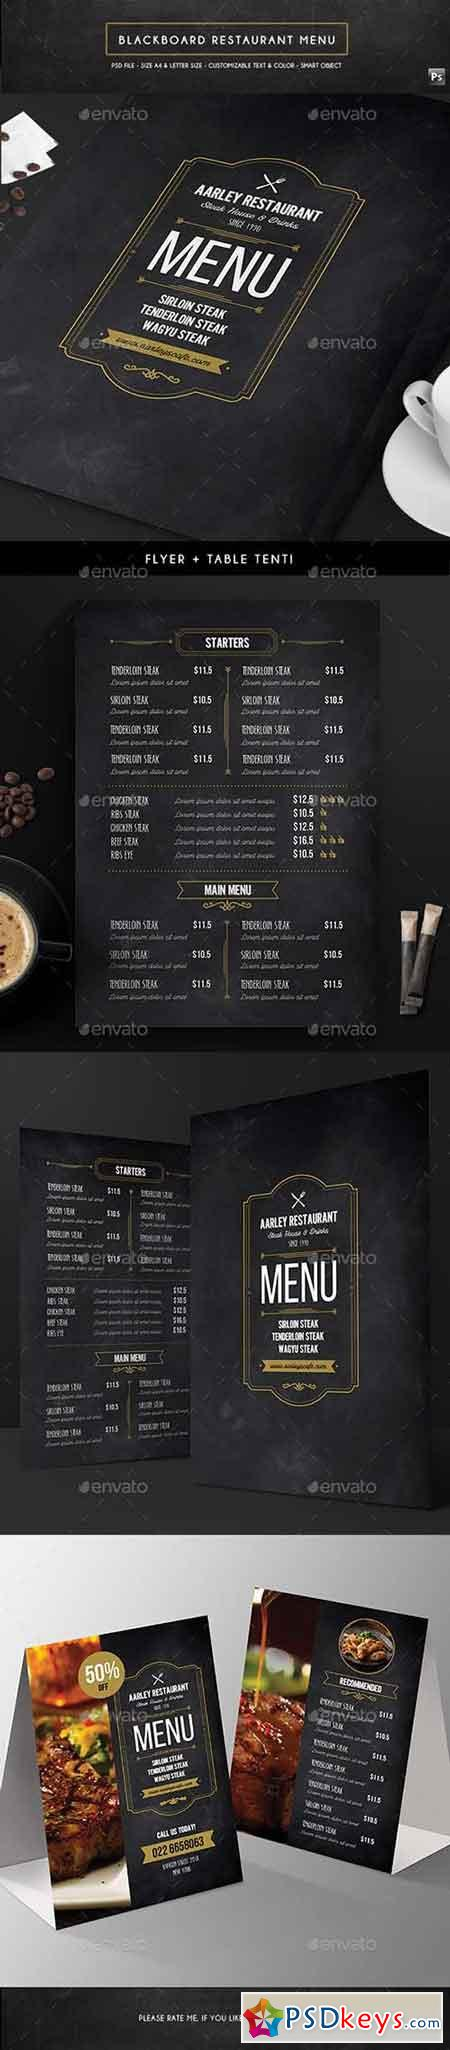 Blackboard Menu Flyer + Table Tent 16711712